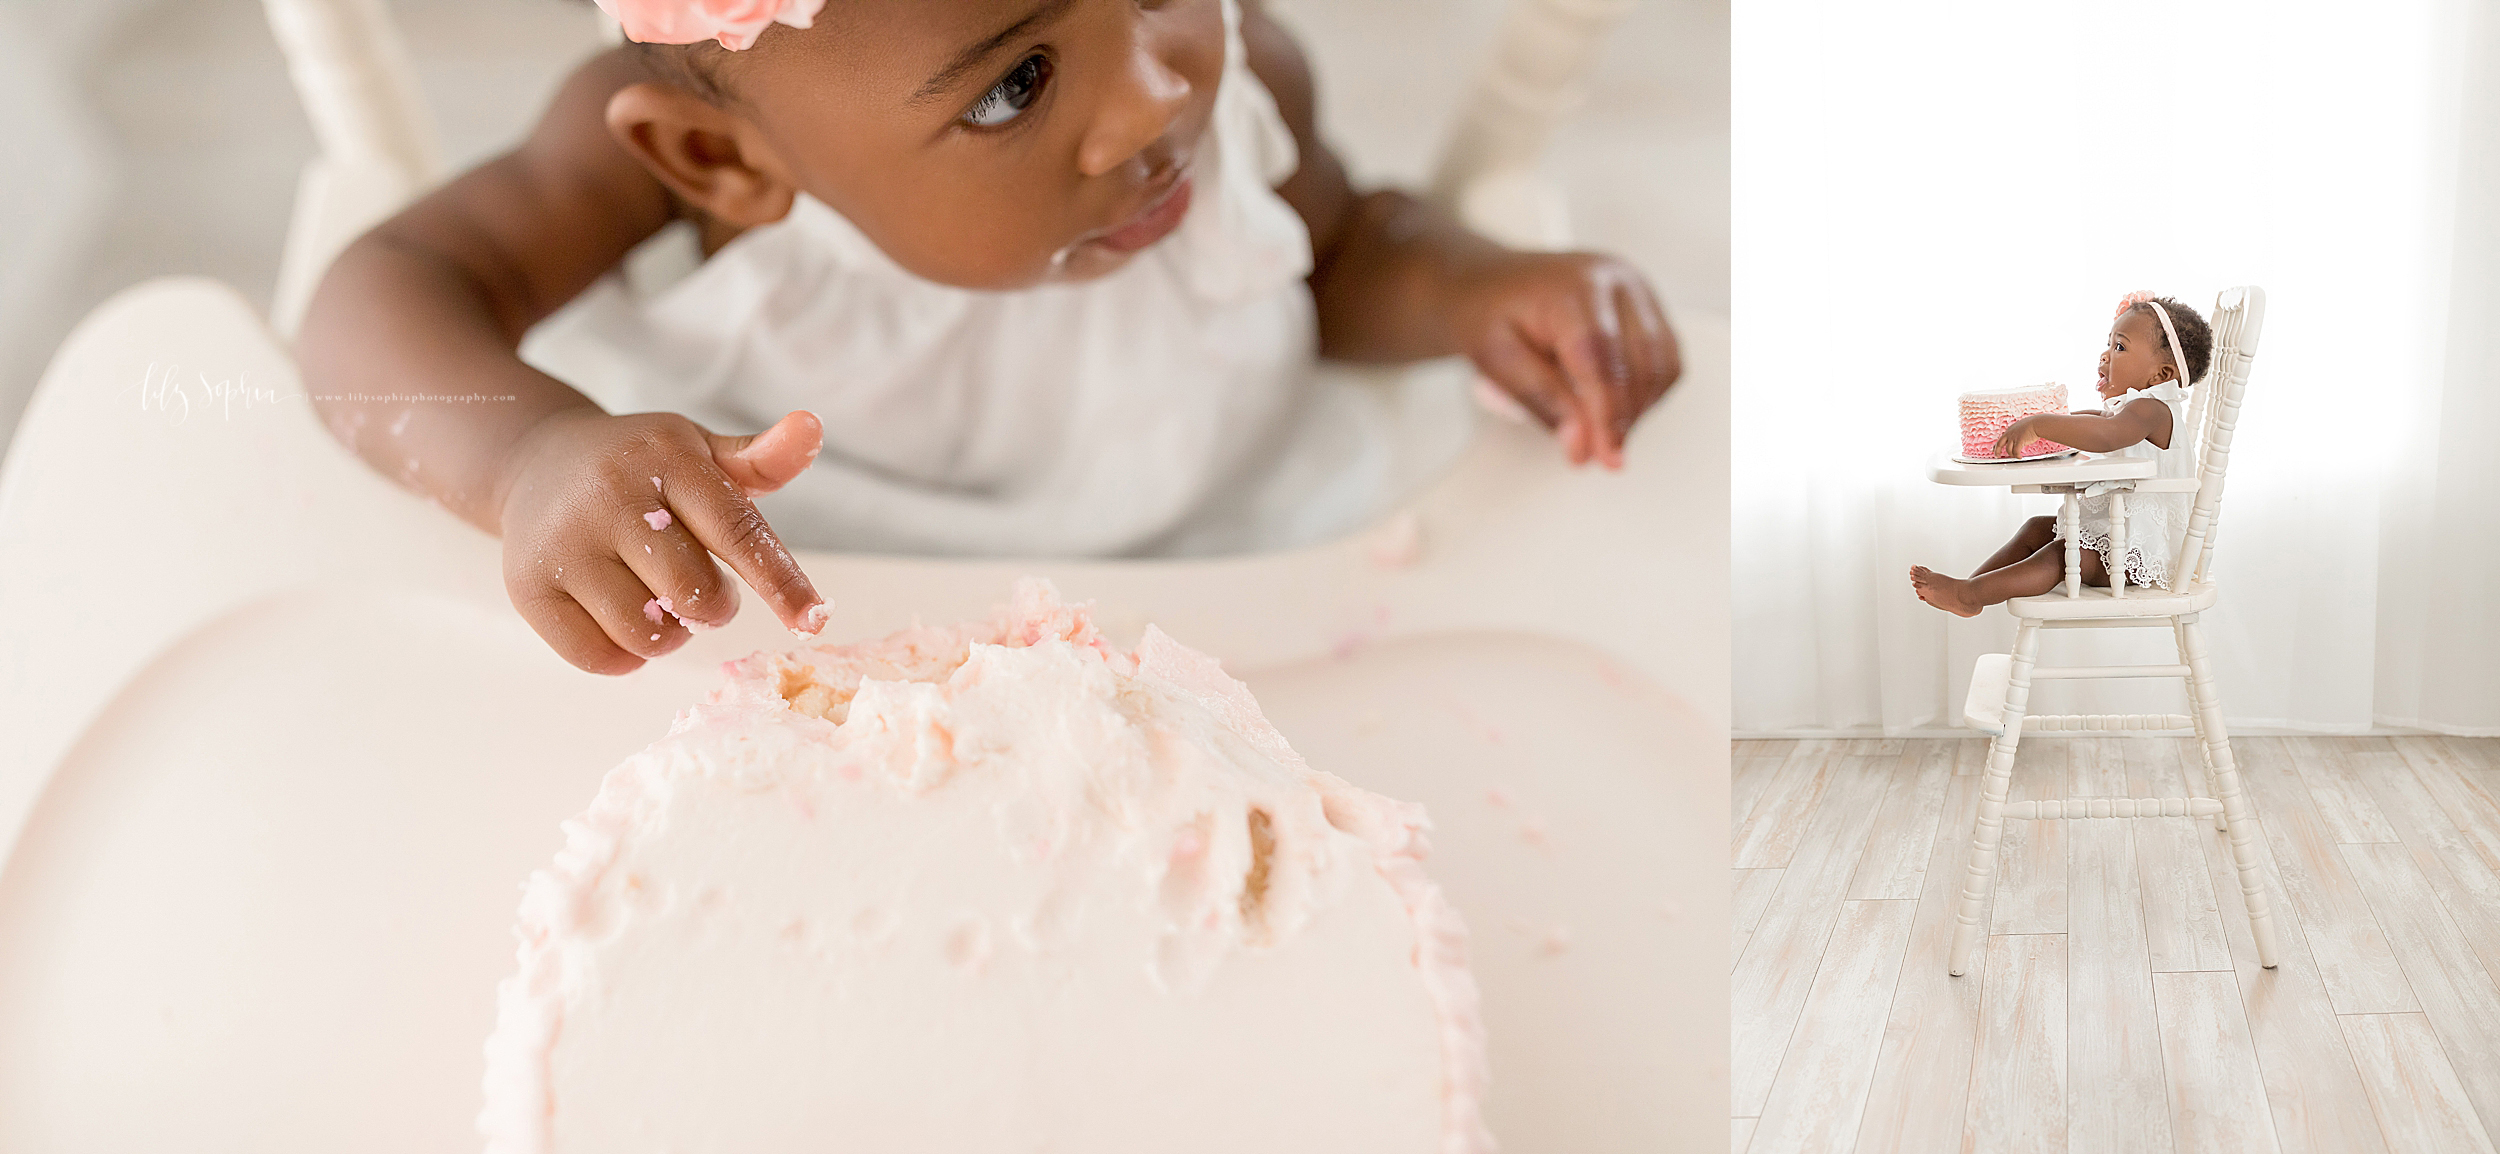 atlanta-smyrna-brookhaven-decatur-lily-sophia-photography-photographer-portraits-grant-park-intown-first-birthday-cake-smash-one-year-old-toddler-baby-girl_0021.jpg